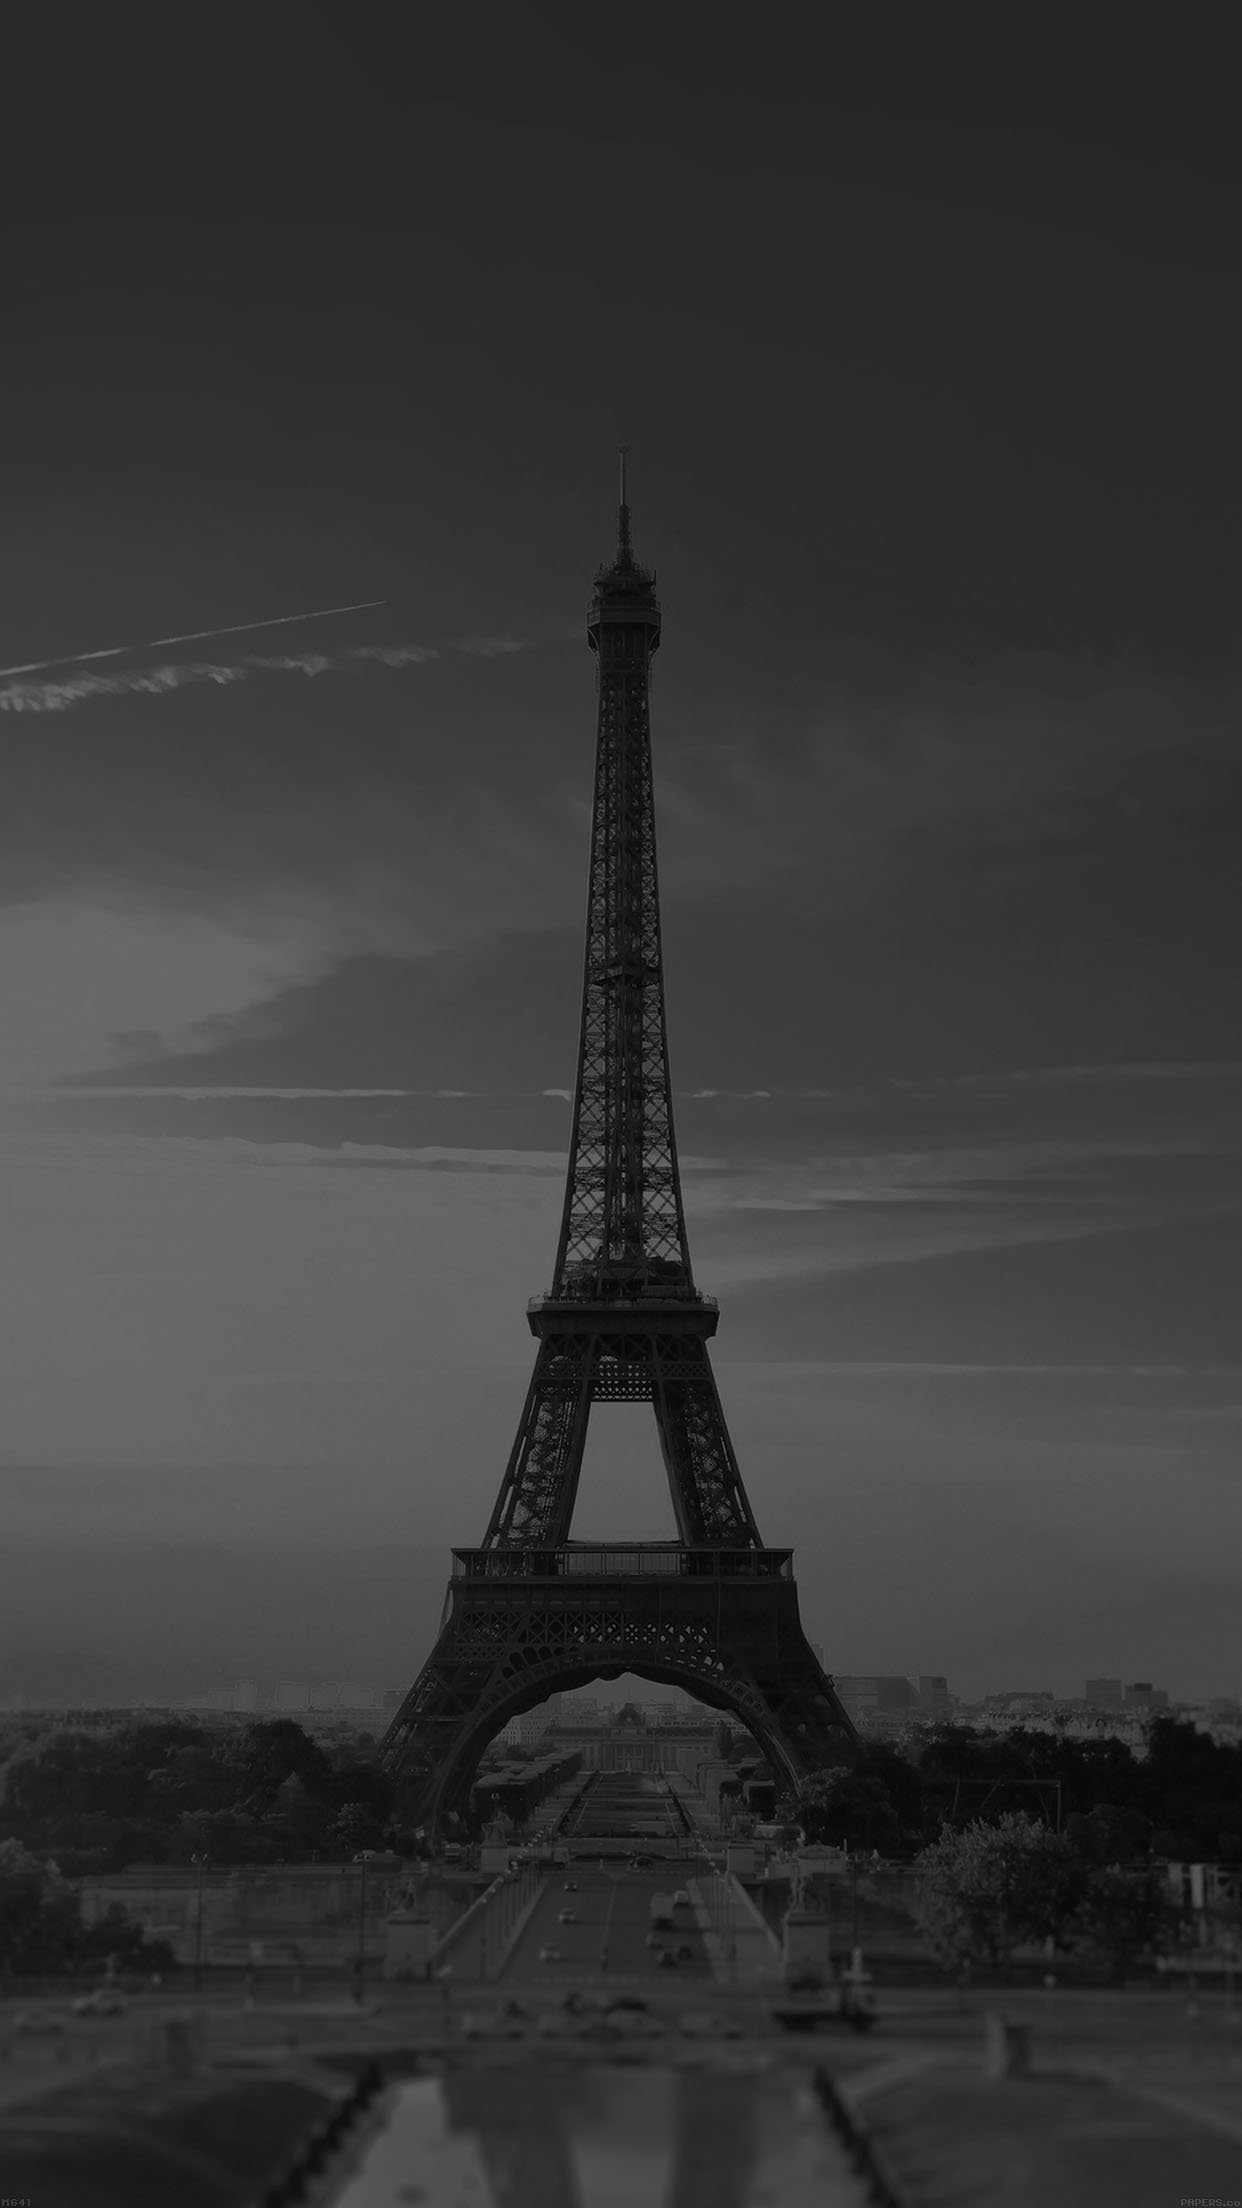 Ipad for Eiffel tower wall mural black and white